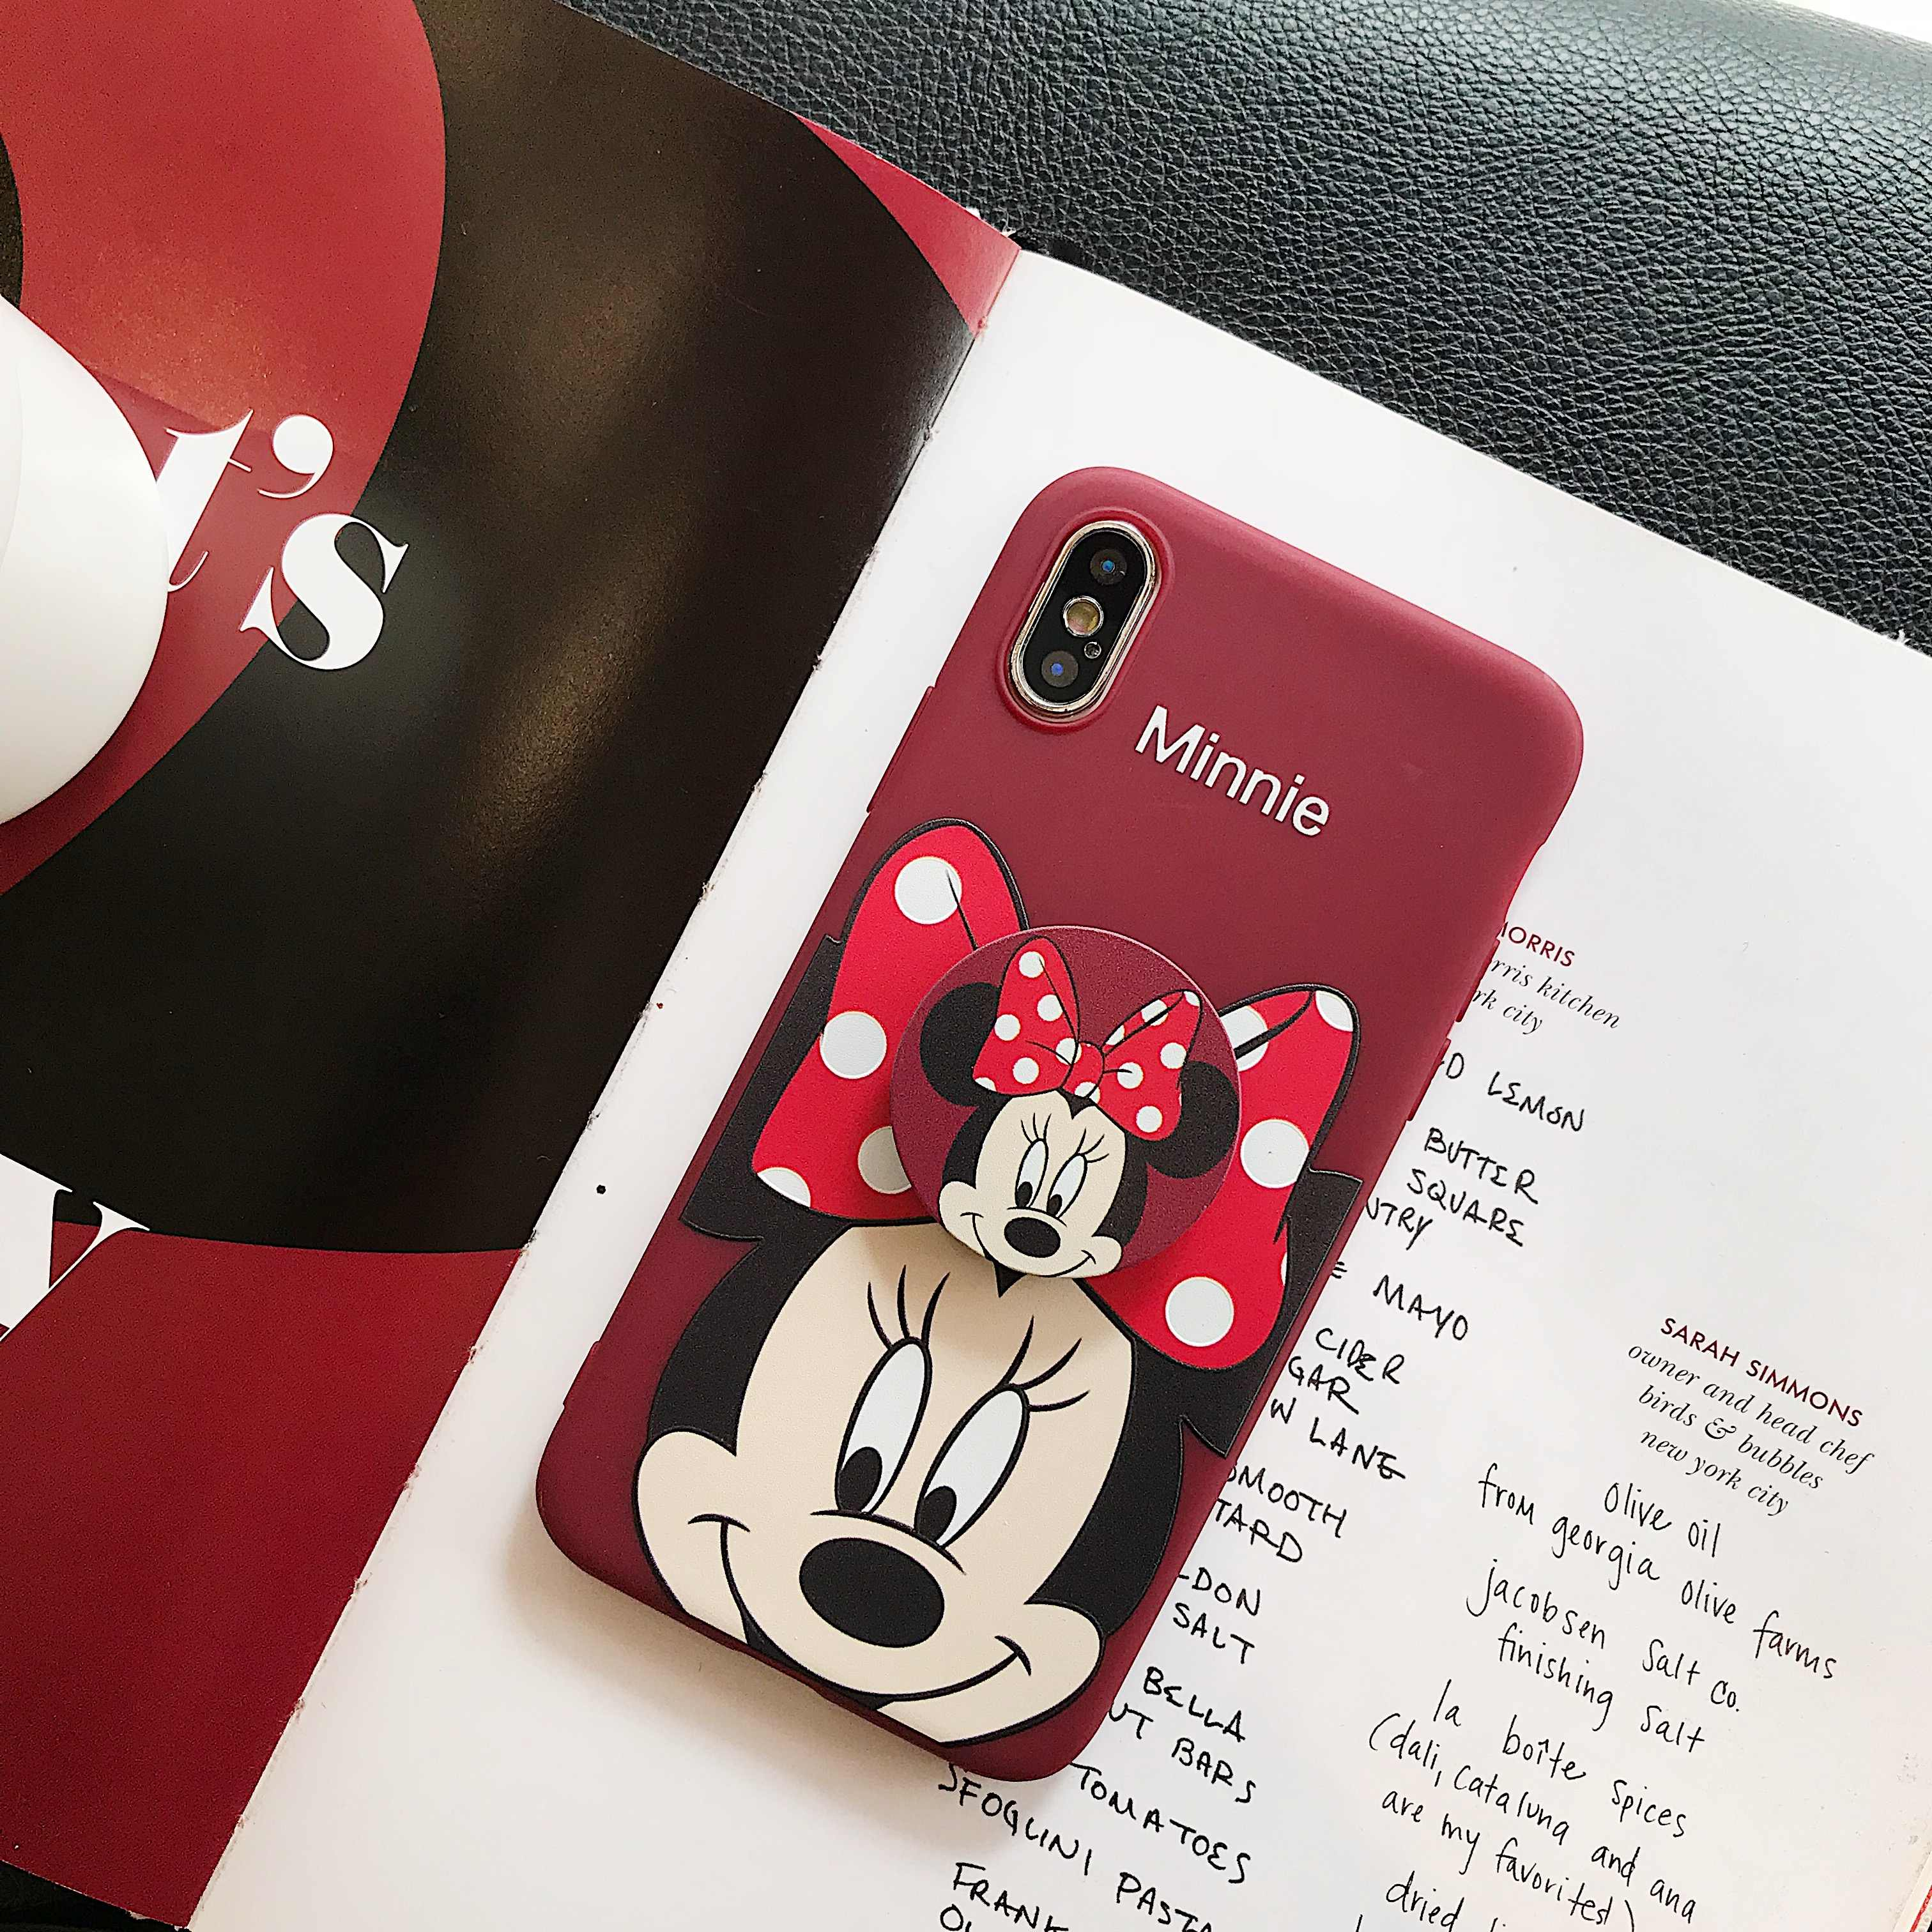 New 3D Cute Minnie Holder Ring case for iphone 6 S plus 7 7plus 8 8plus X XS XR MAX 11 Pro Cartoon girl toy phone coque capa